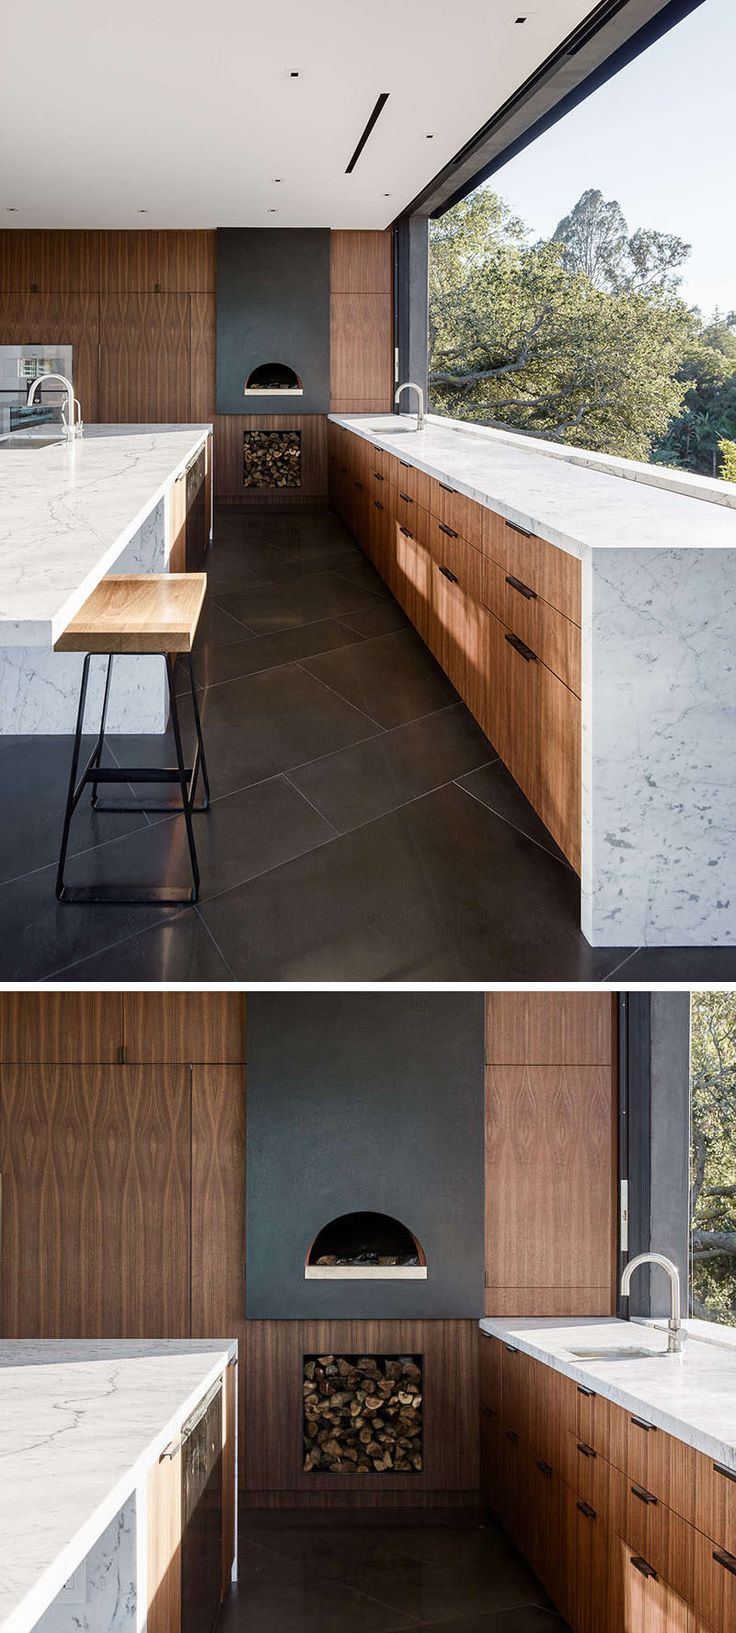 Kitchen Design Idea - Include A Built-In Wood Fire Oven In Your Kitchen | CONTEMPORIST